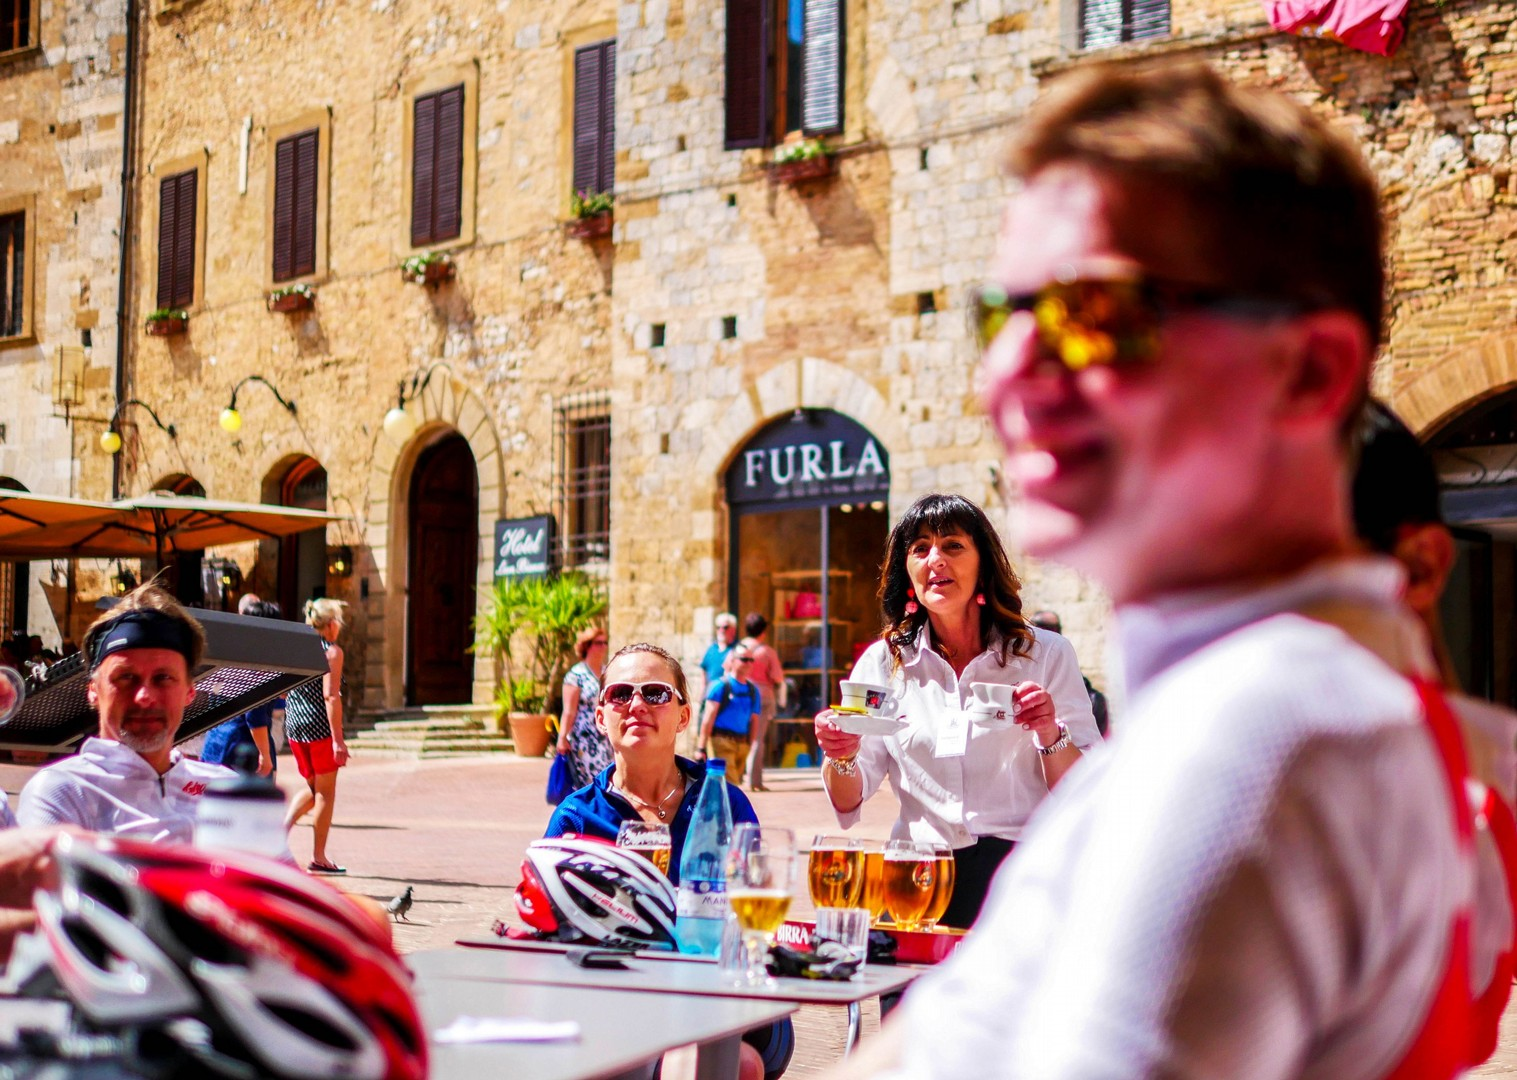 Beer or coffee.jpg - Italy - Tuscany - Giro della Toscana - Guided Road Cycling Holiday - Road Cycling